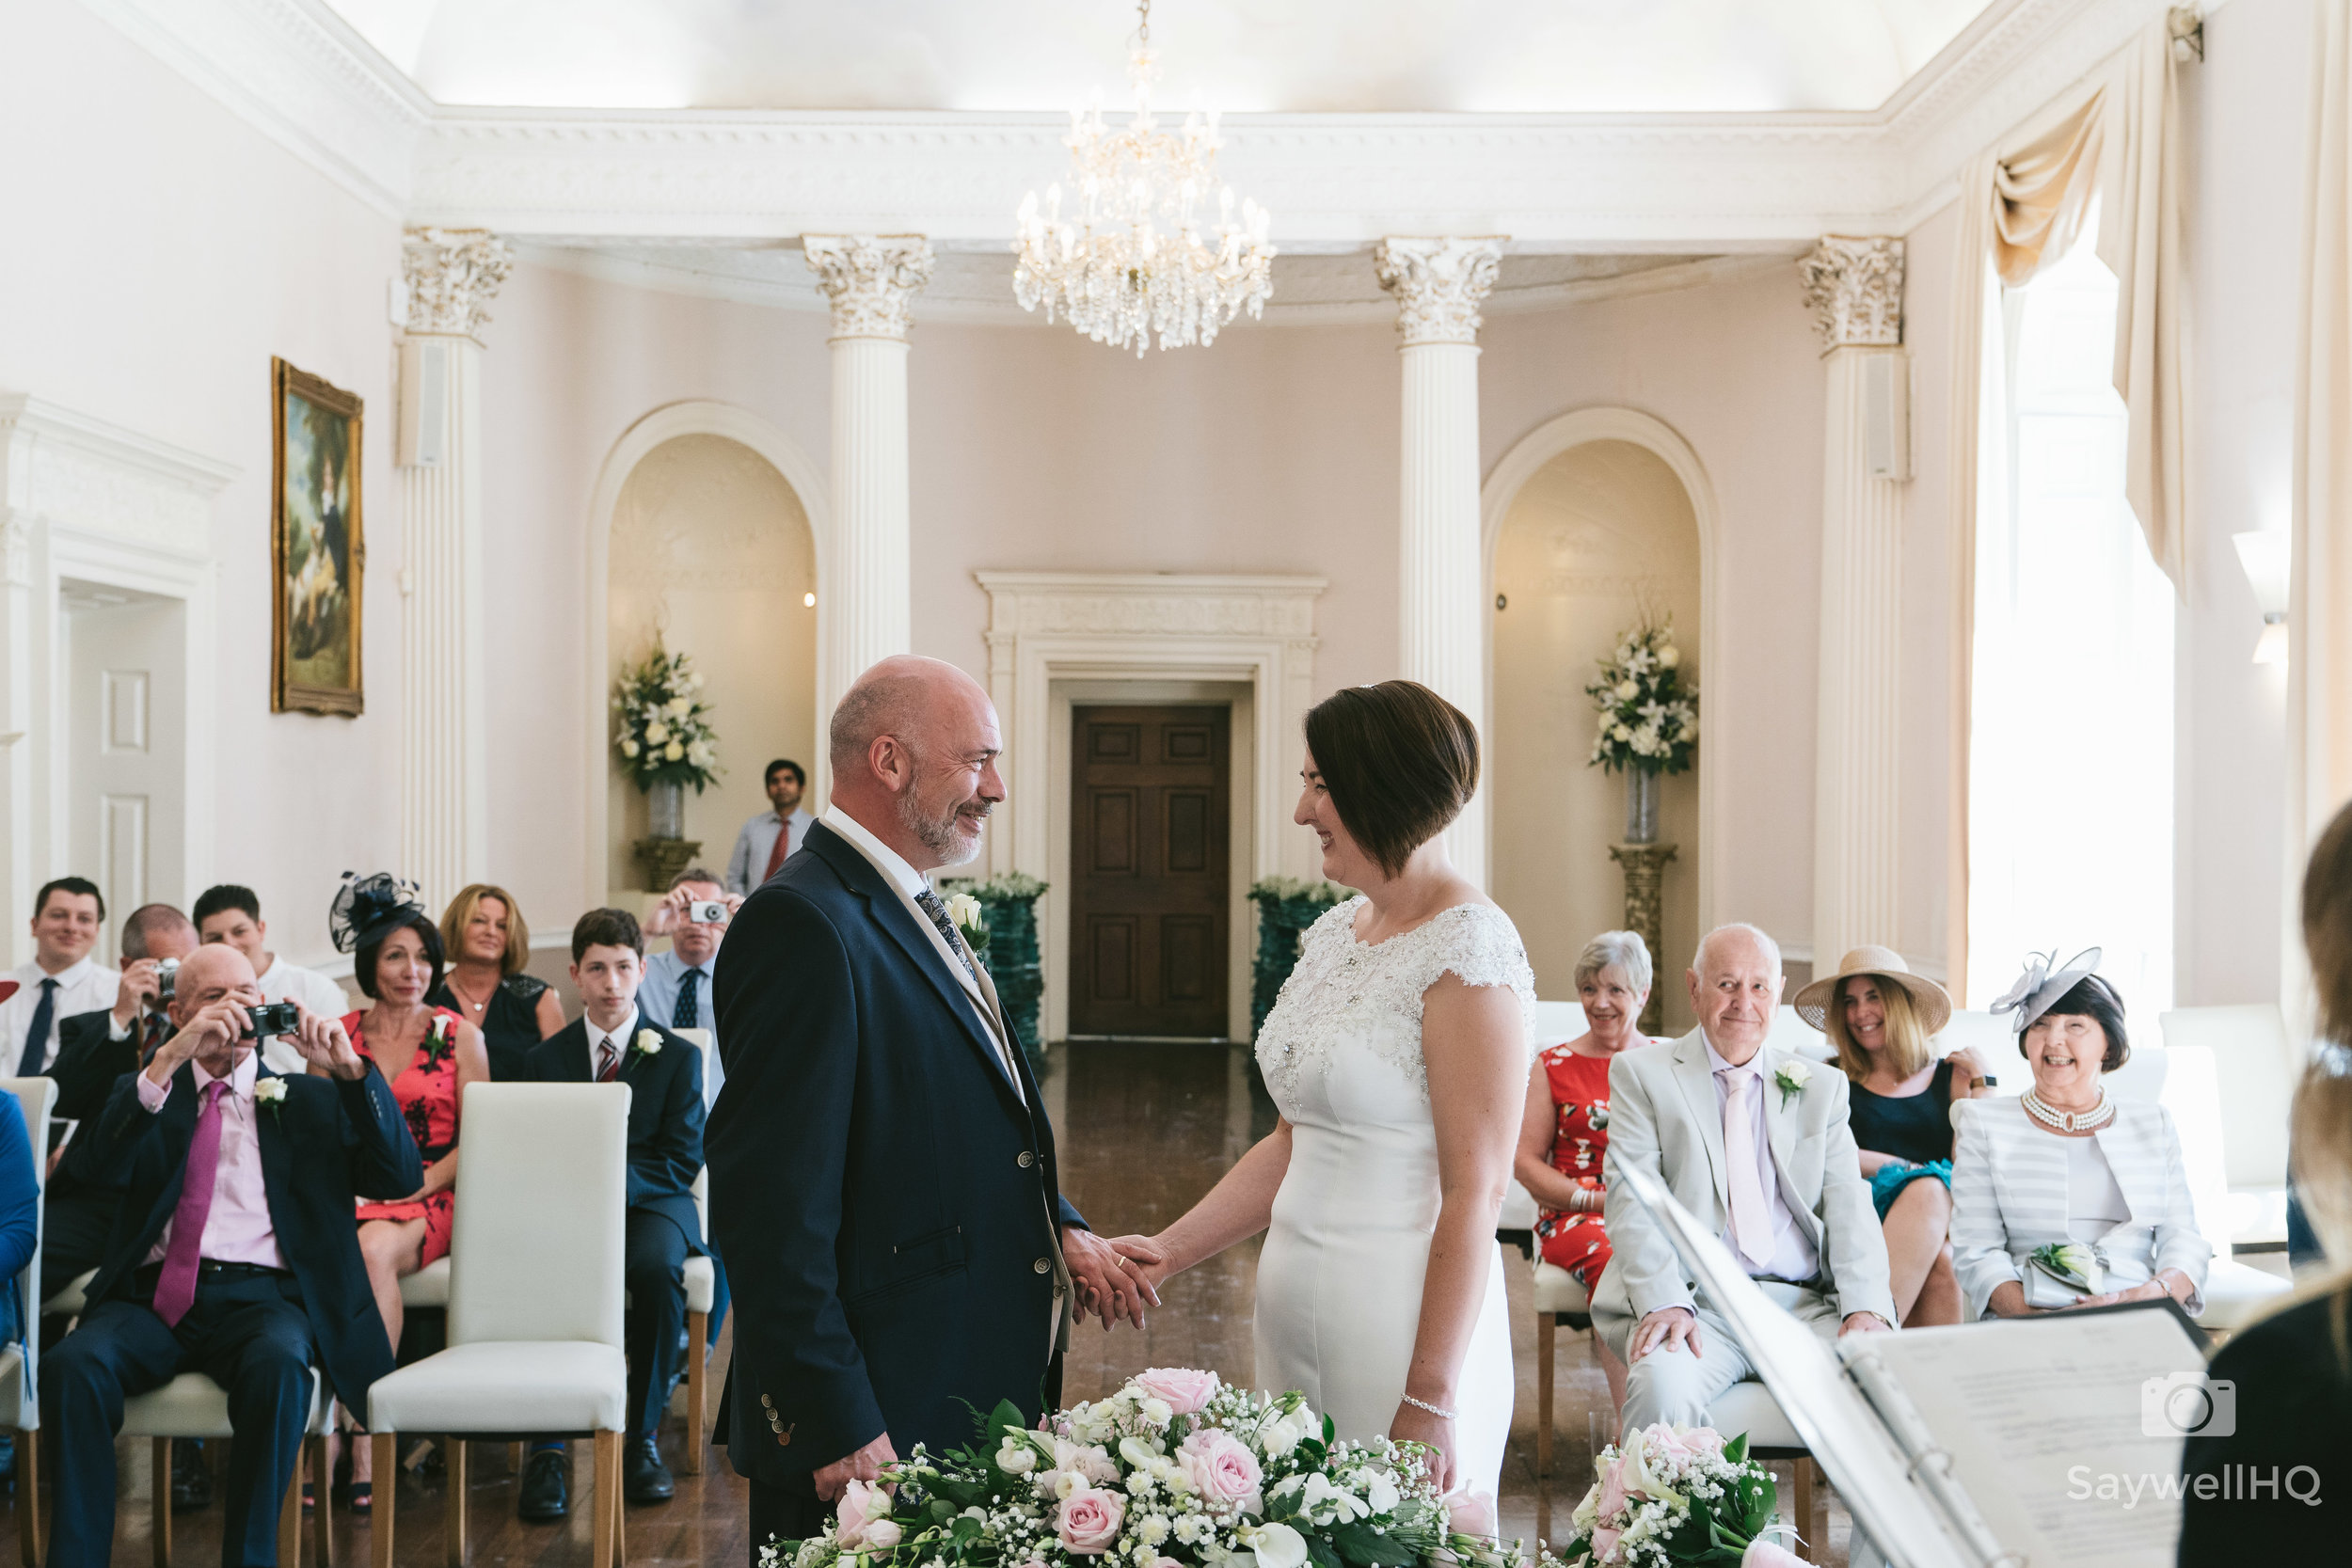 Colwick hall wedding bride and groom ceremony room